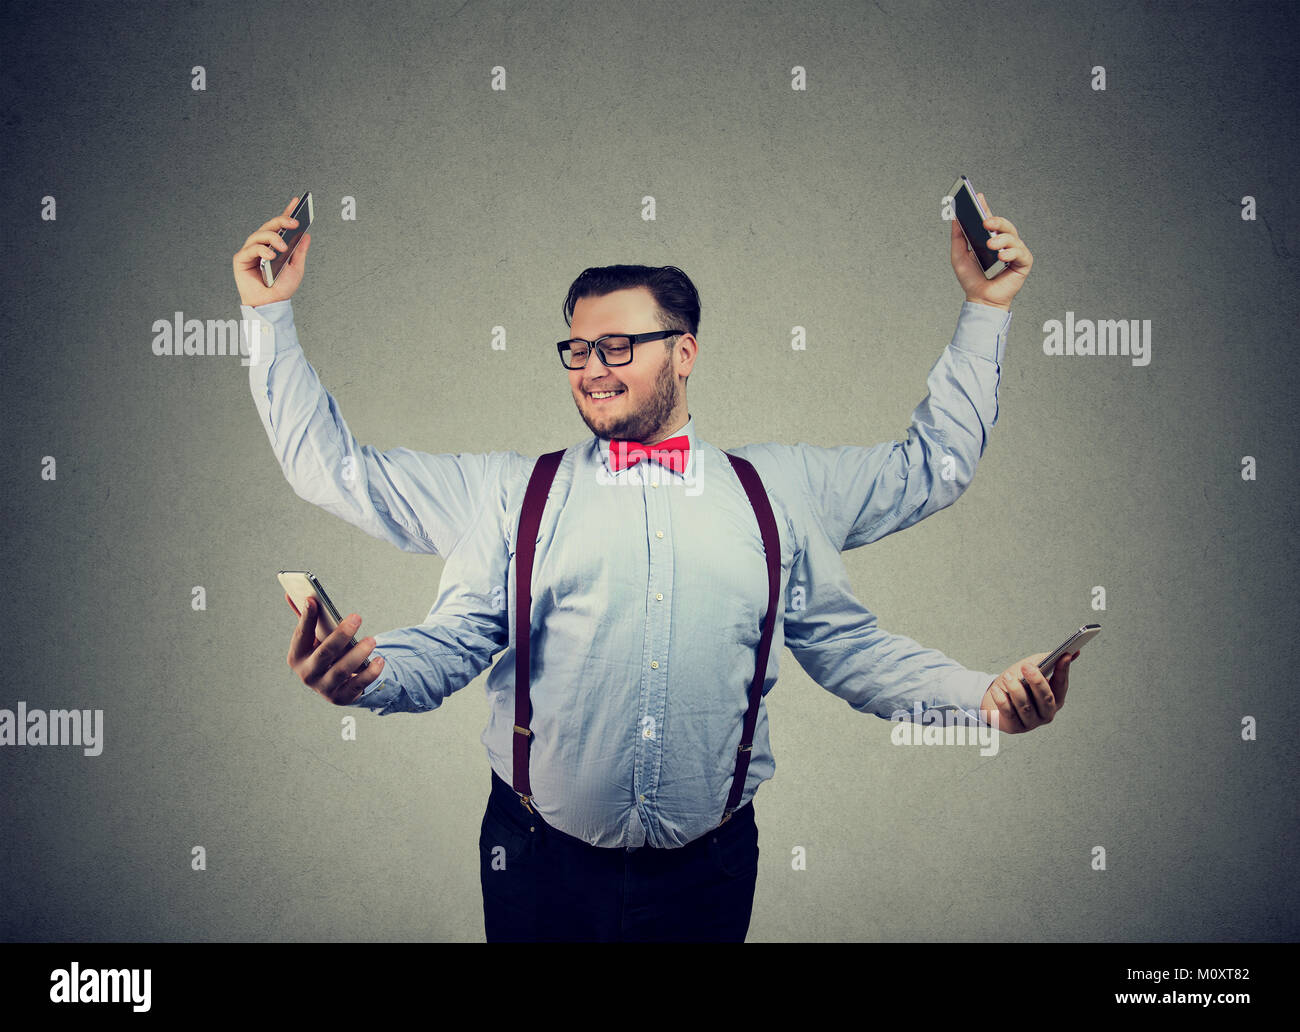 Chunky young man in formal clothing having four arms and using smartphones being multitasking. - Stock Image